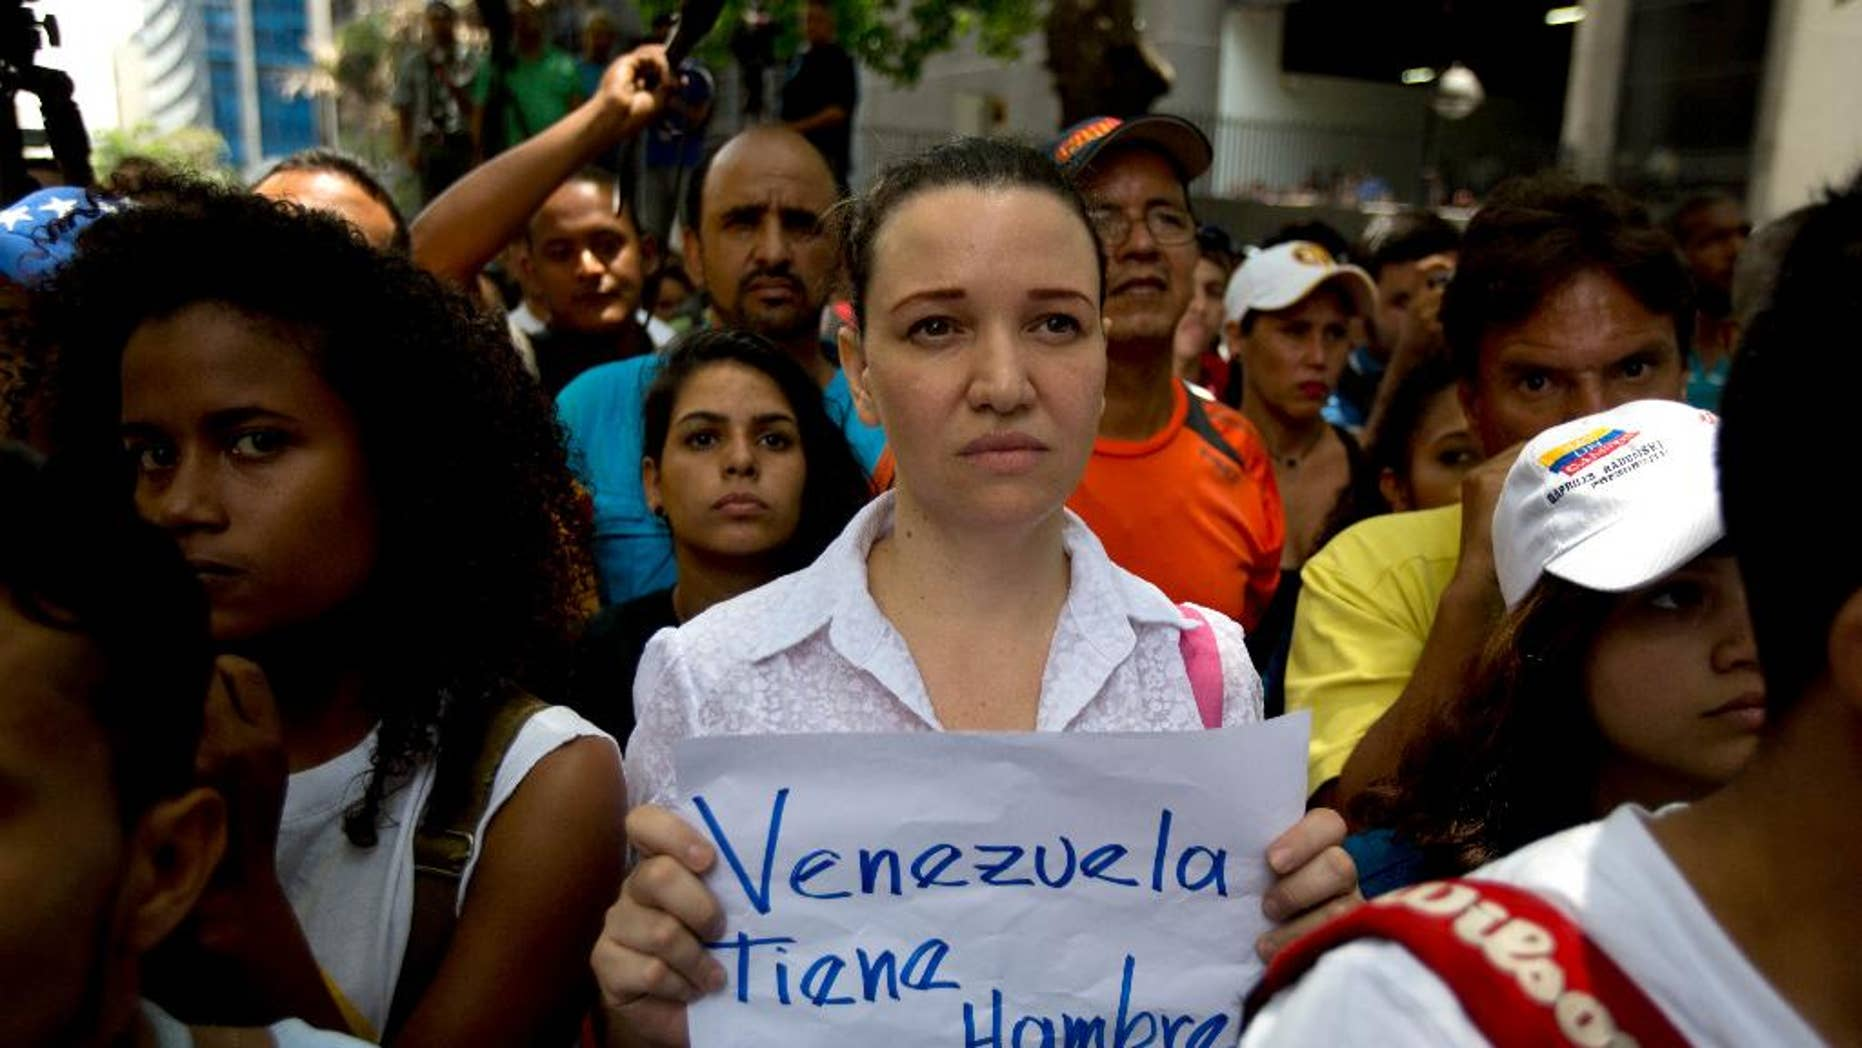 """An opposition members holds a handwritten message that that reads in Spanish; """"Venezuela is hungry,"""" during a protest outside the court offices of the Chacao municipality, in Caracas, Venezuela, Wednesday, May 25, 2016. Opposition members held a demonstration to demand authorities hold a recall referendum on cutting short Nicolas Maduro's presidency. (AP Photo/Fernando Llano)"""